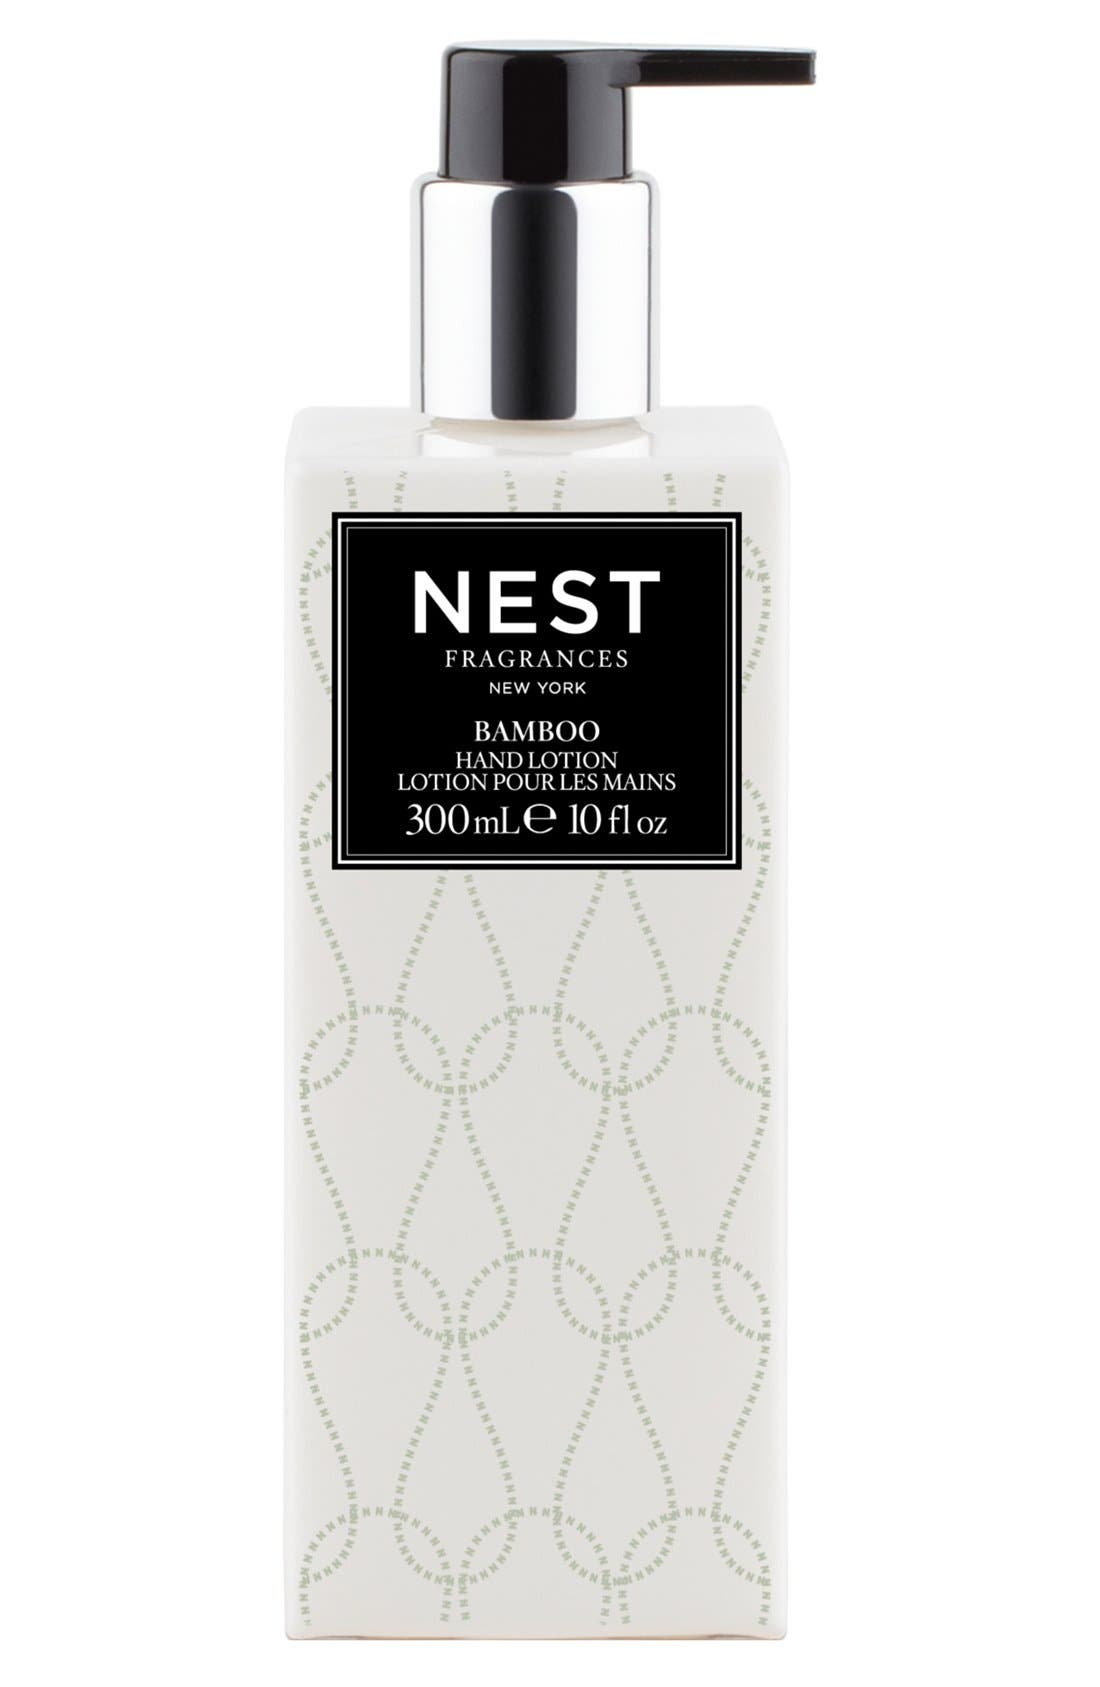 NEST Fragrances 'Bamboo' Hand Lotion